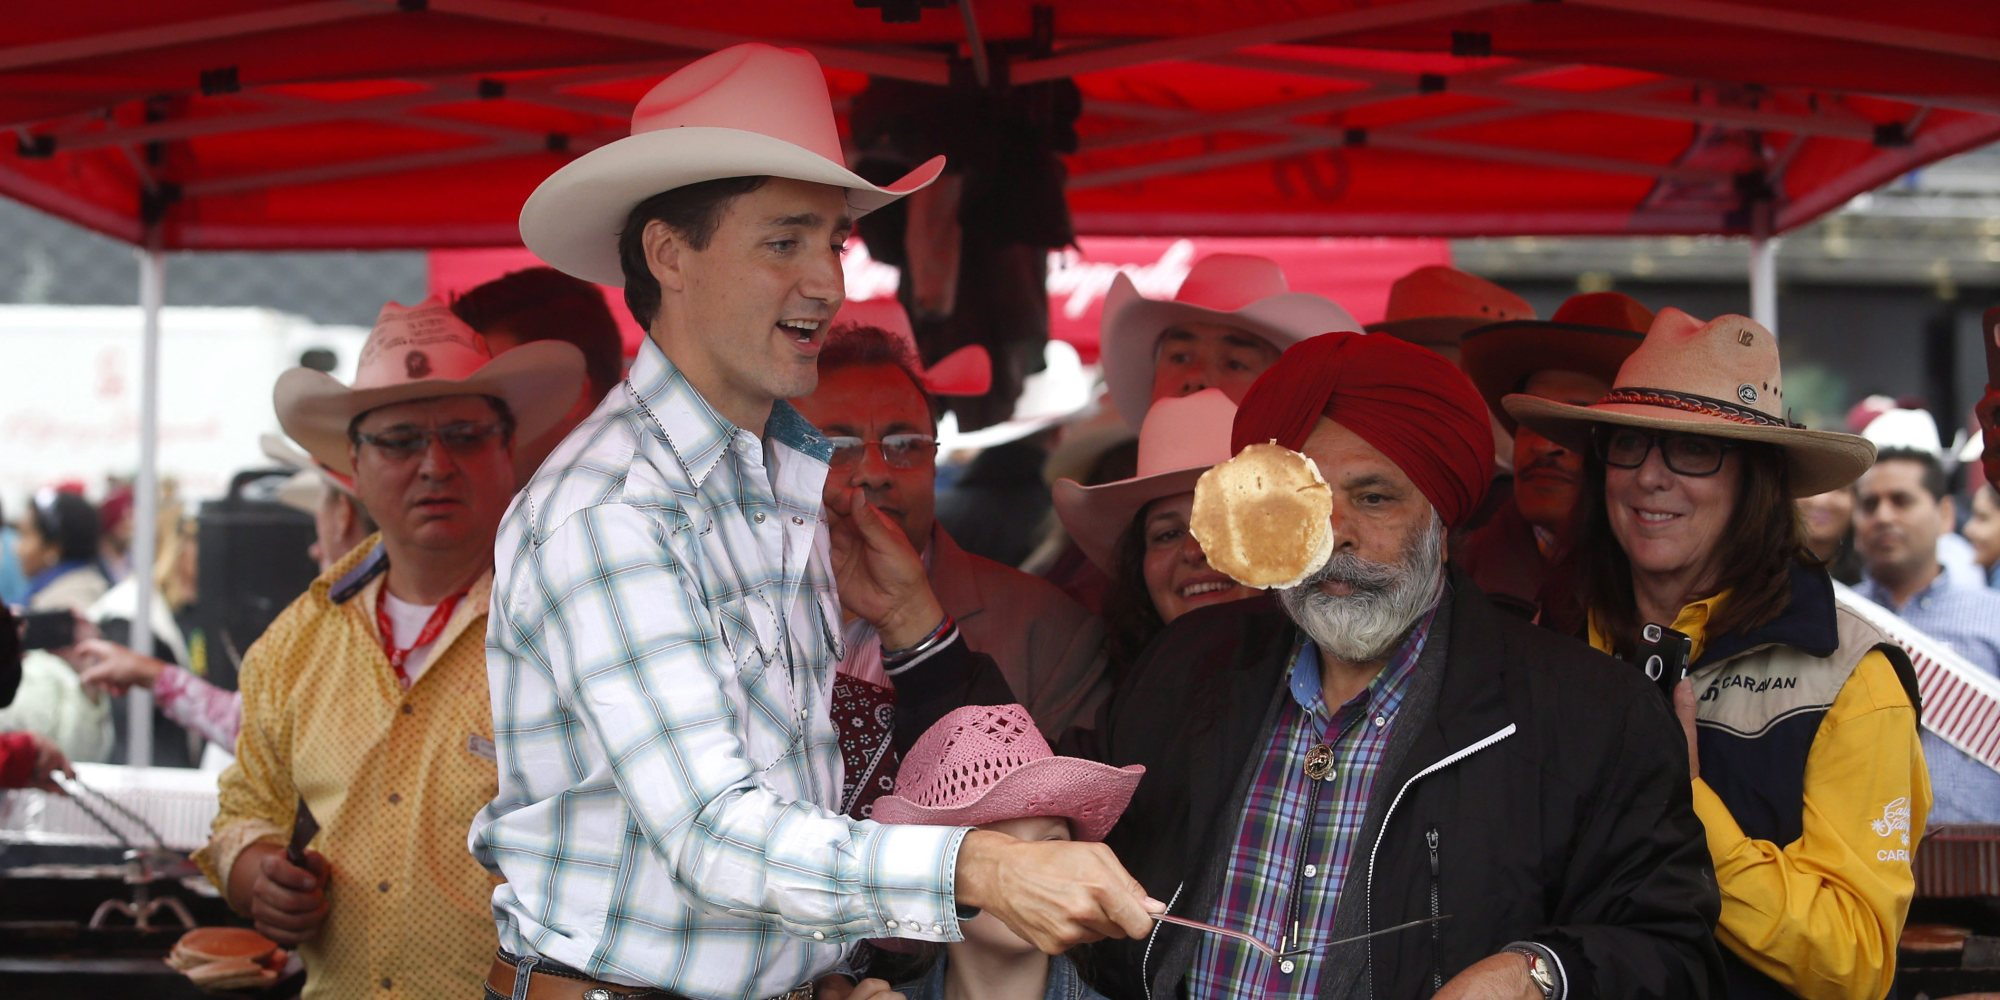 Justin Trudeau Visits Calgary Stampede